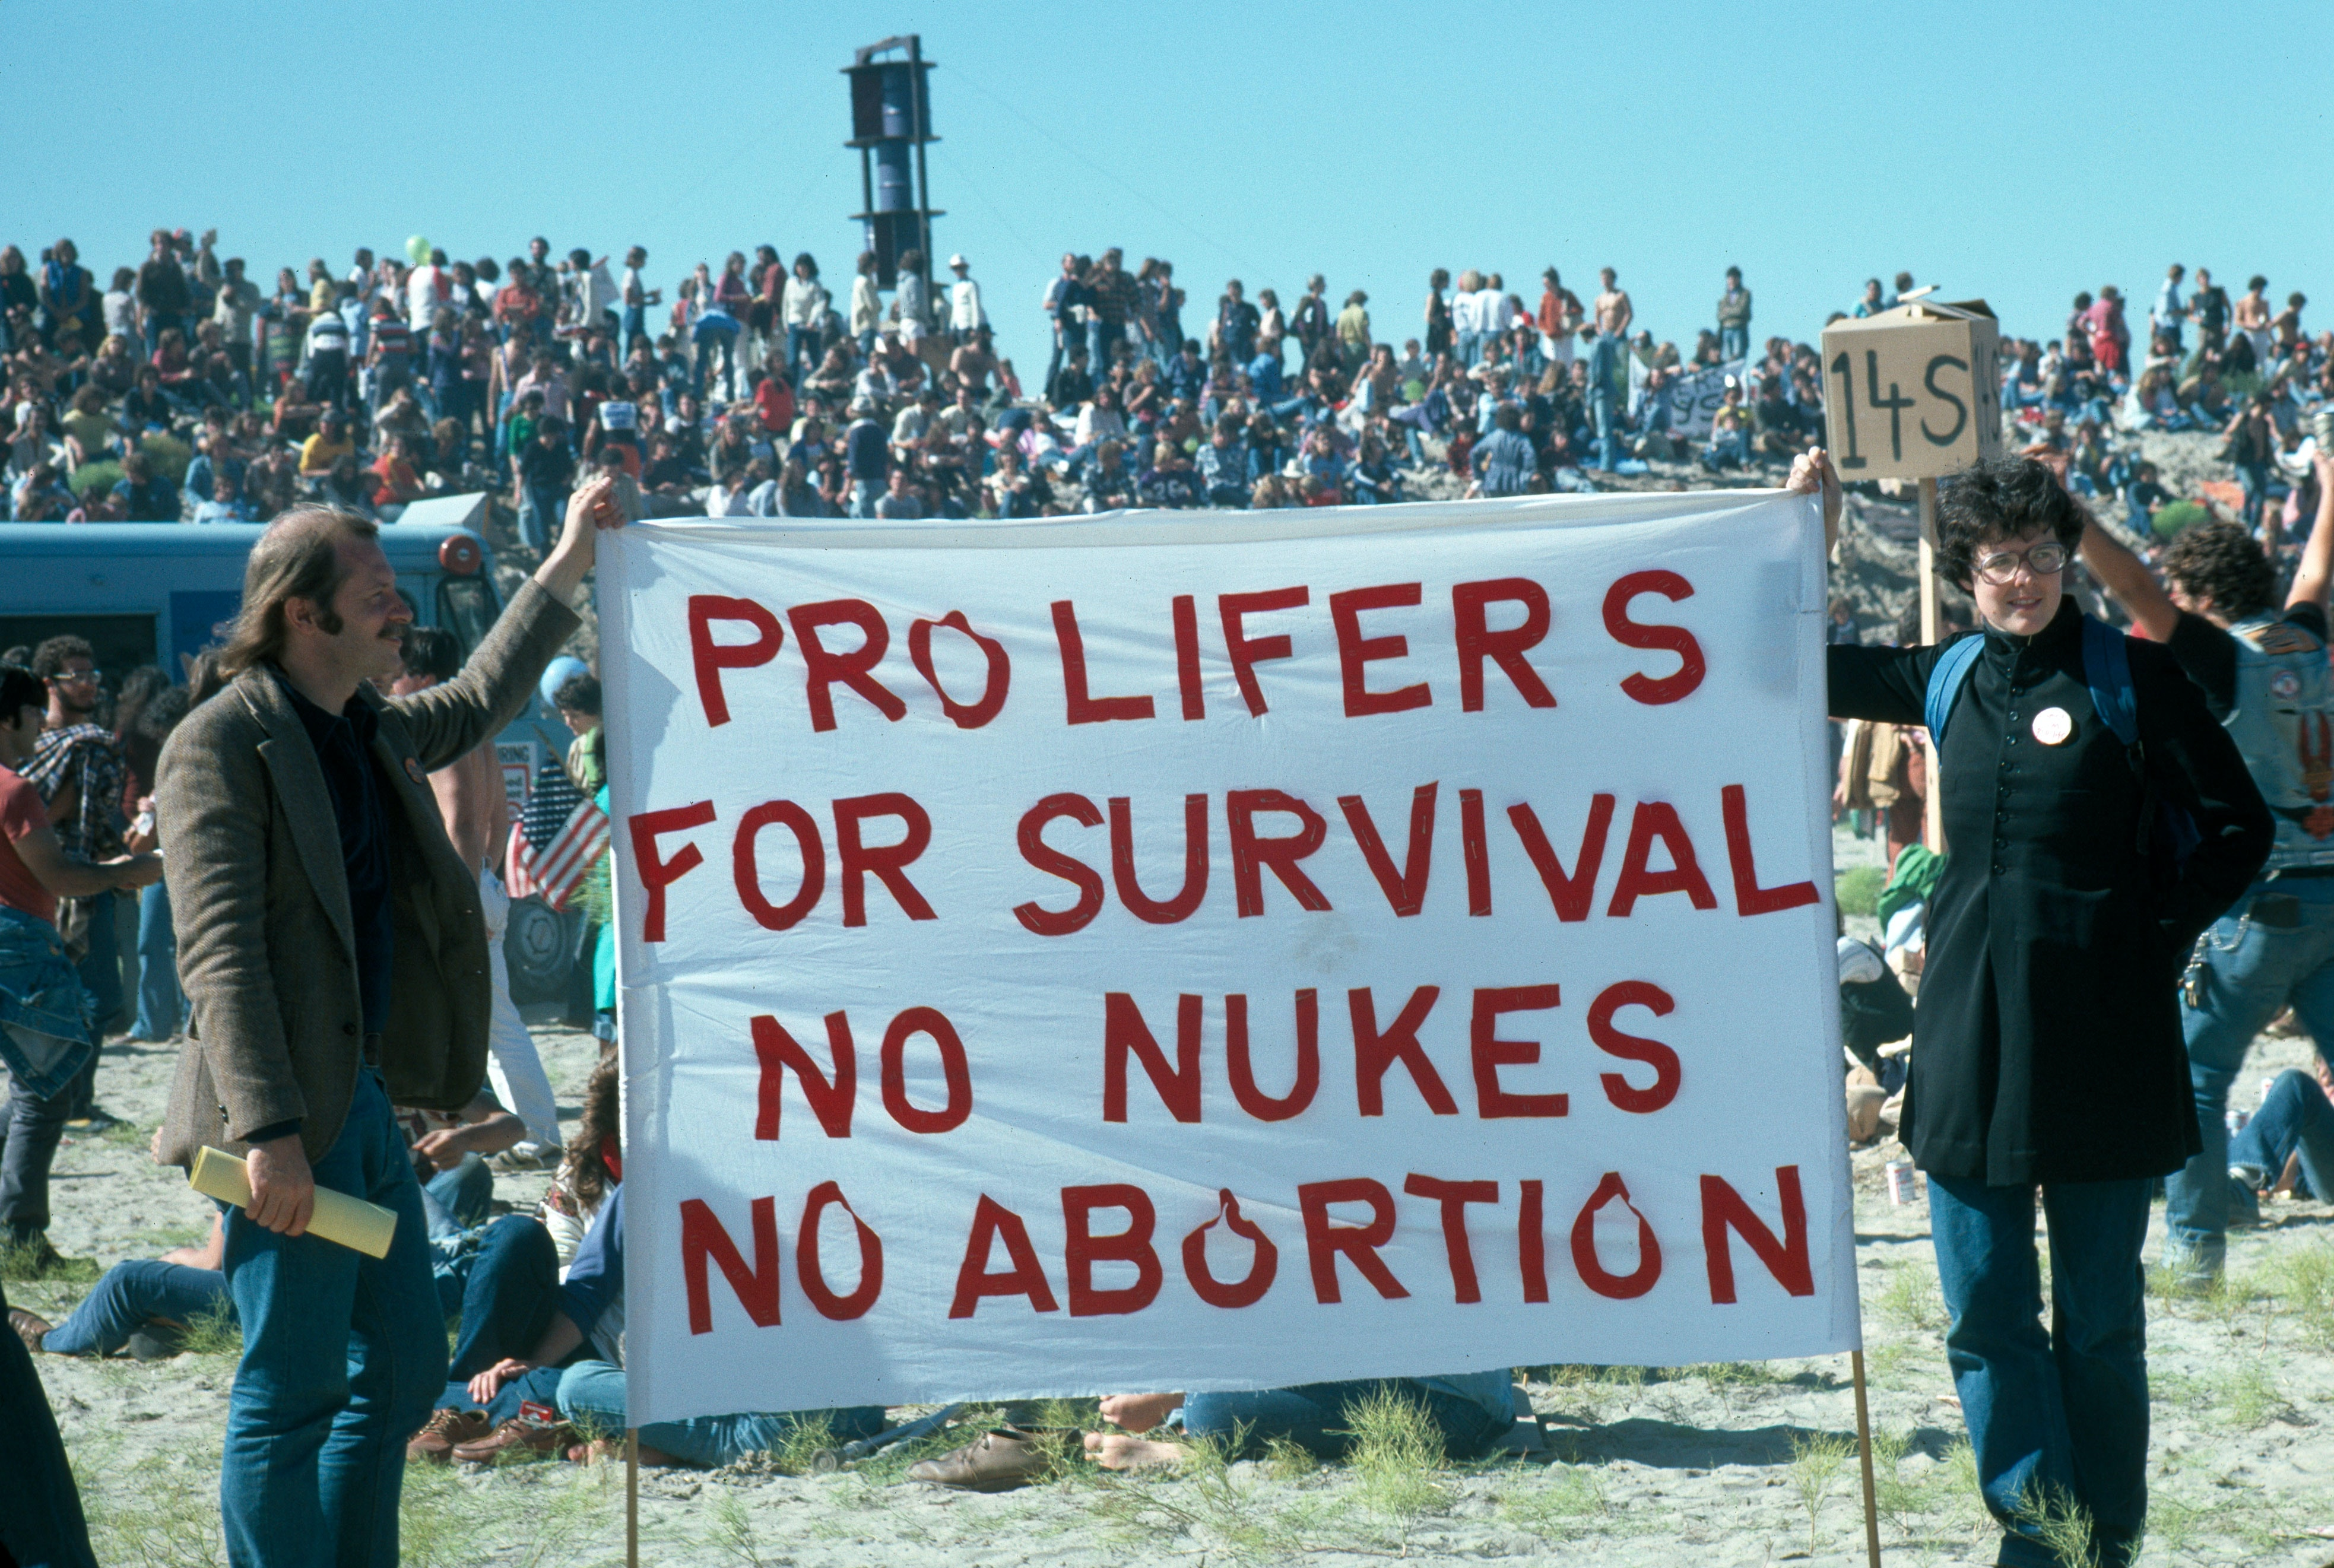 """At an outdoor demonstration, two people hold a sign that reads """"Pro Lifers For Survival No Nukes No Abortion."""""""